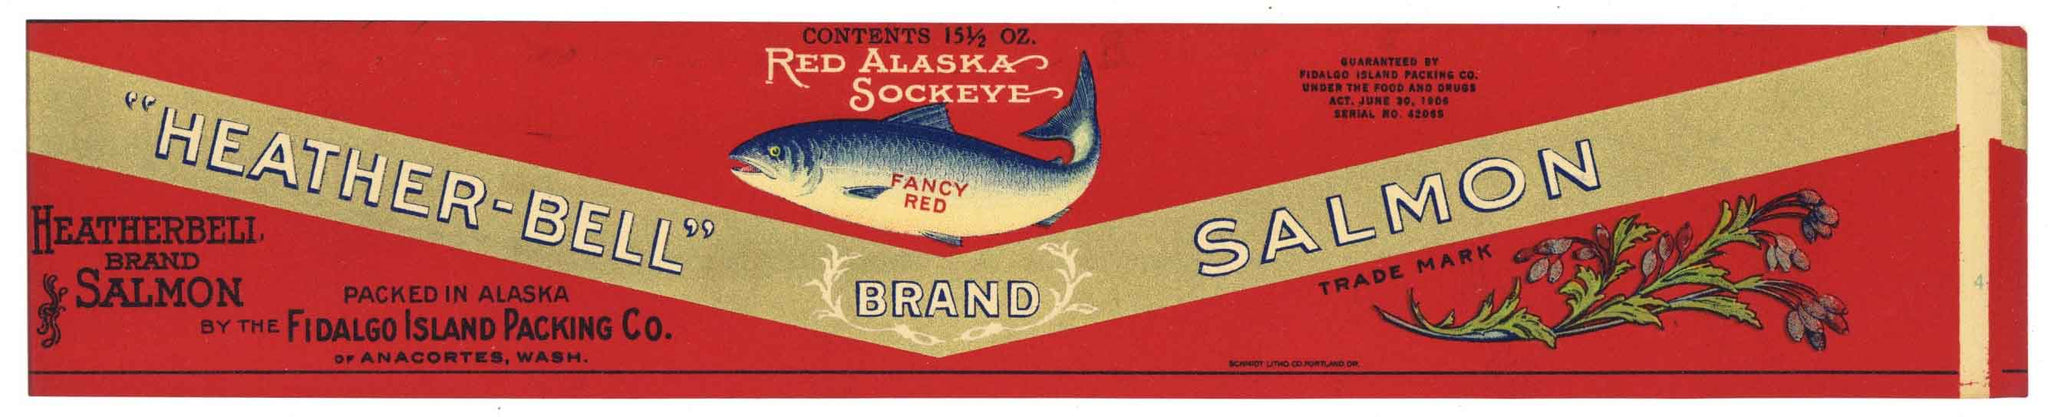 Heather Bell Brand Vintage Salmon Can Label, large flat